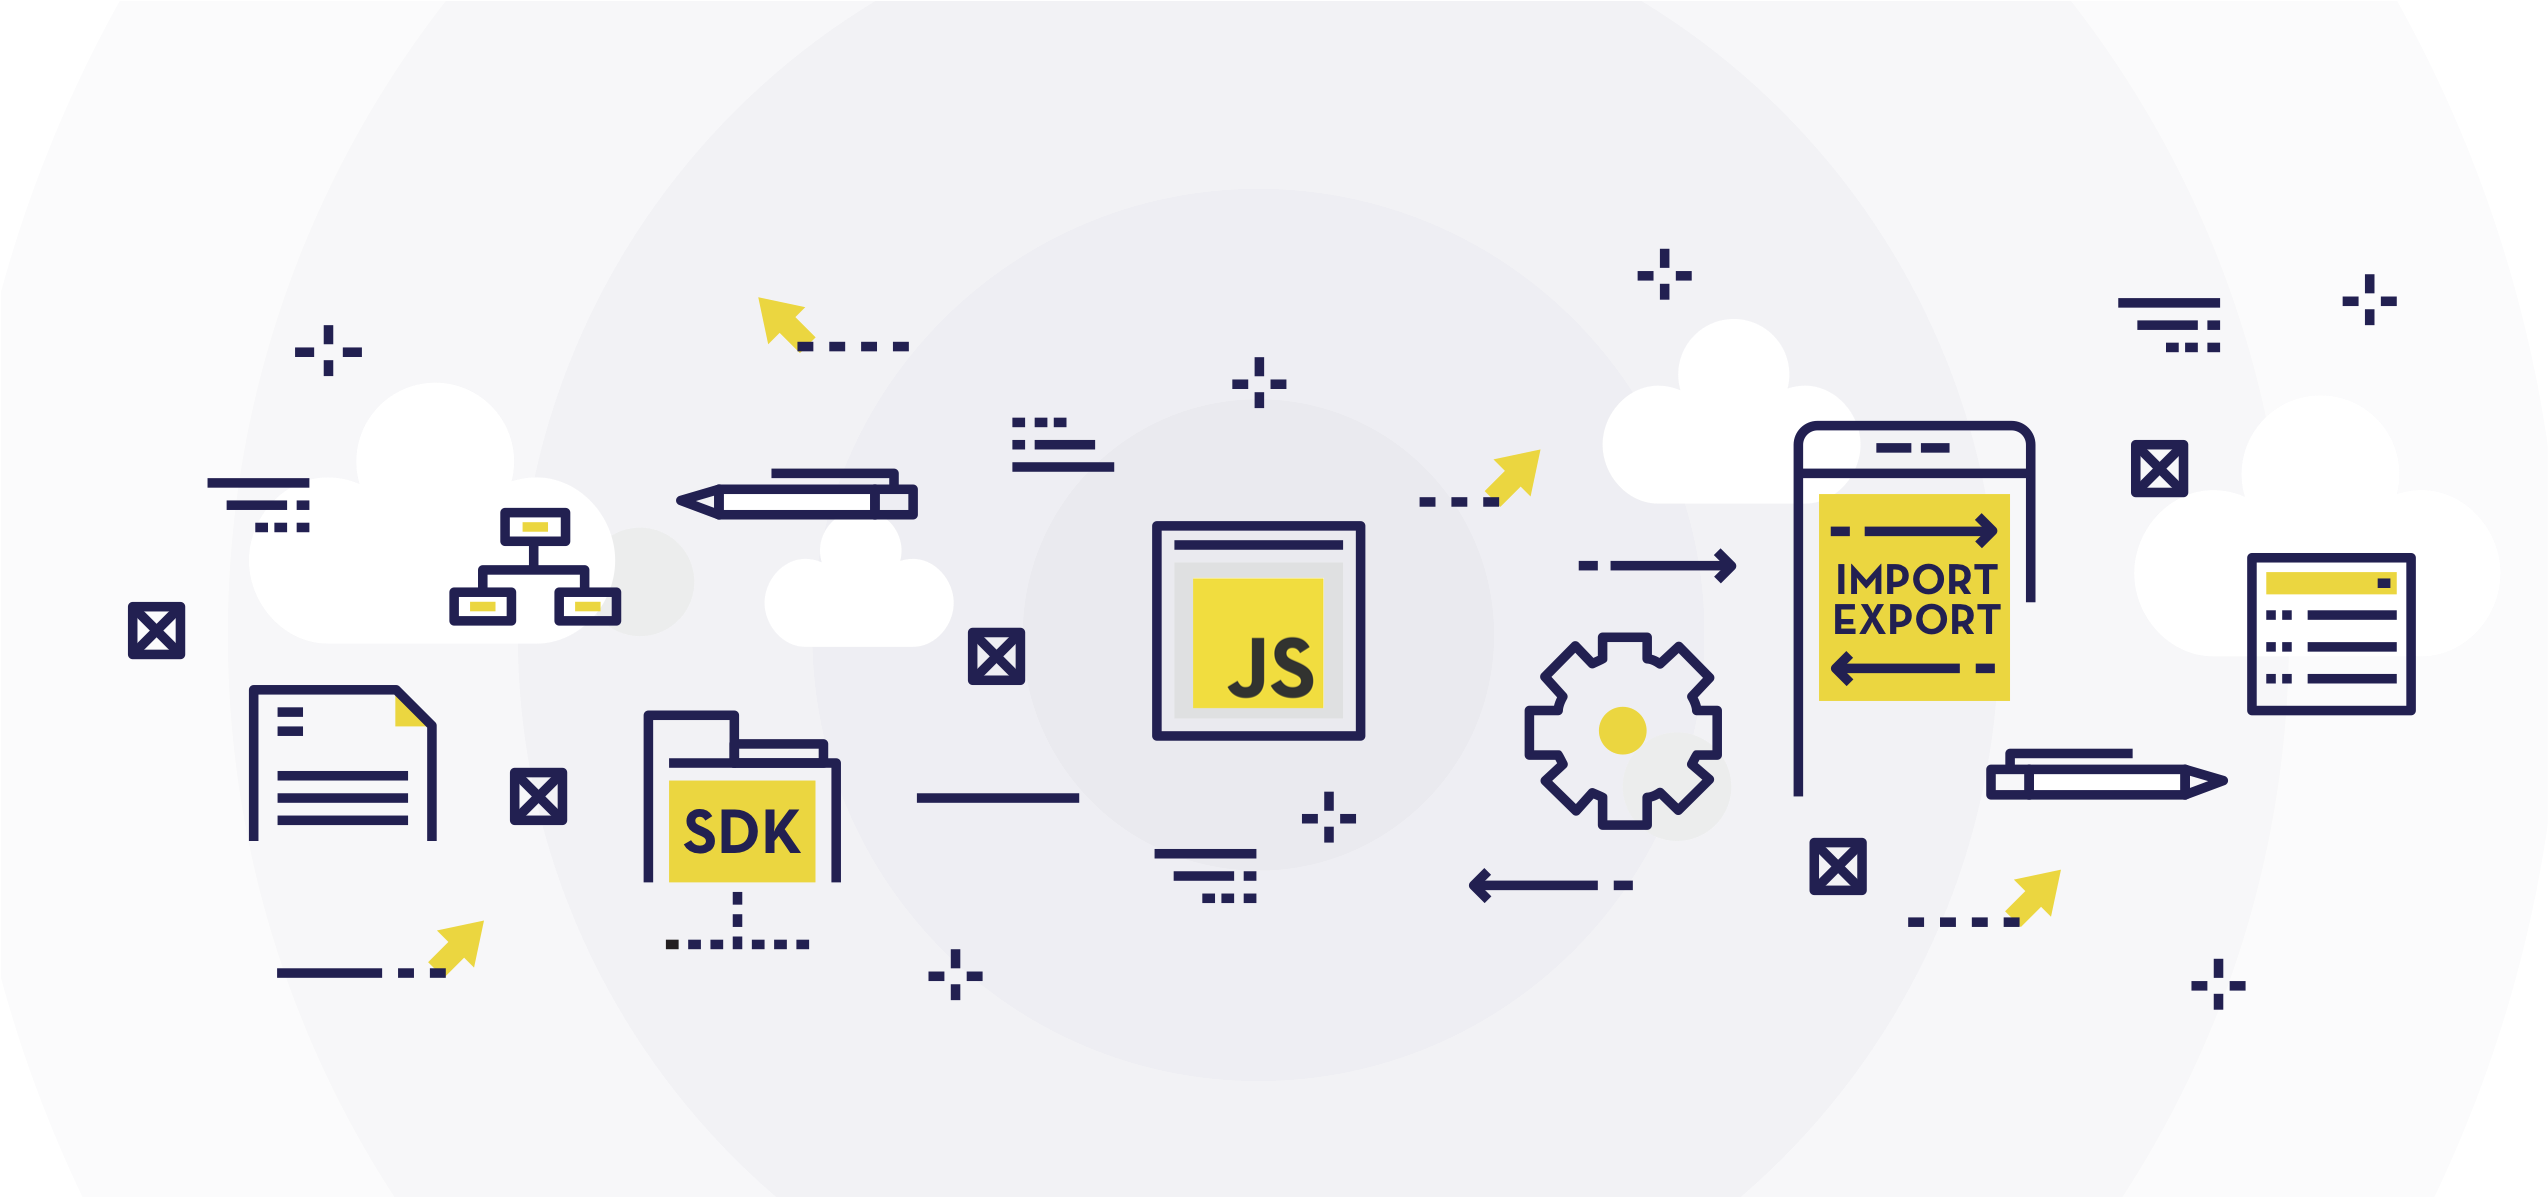 Javascript all the things updated sdks and import export tools pooptronica Choice Image